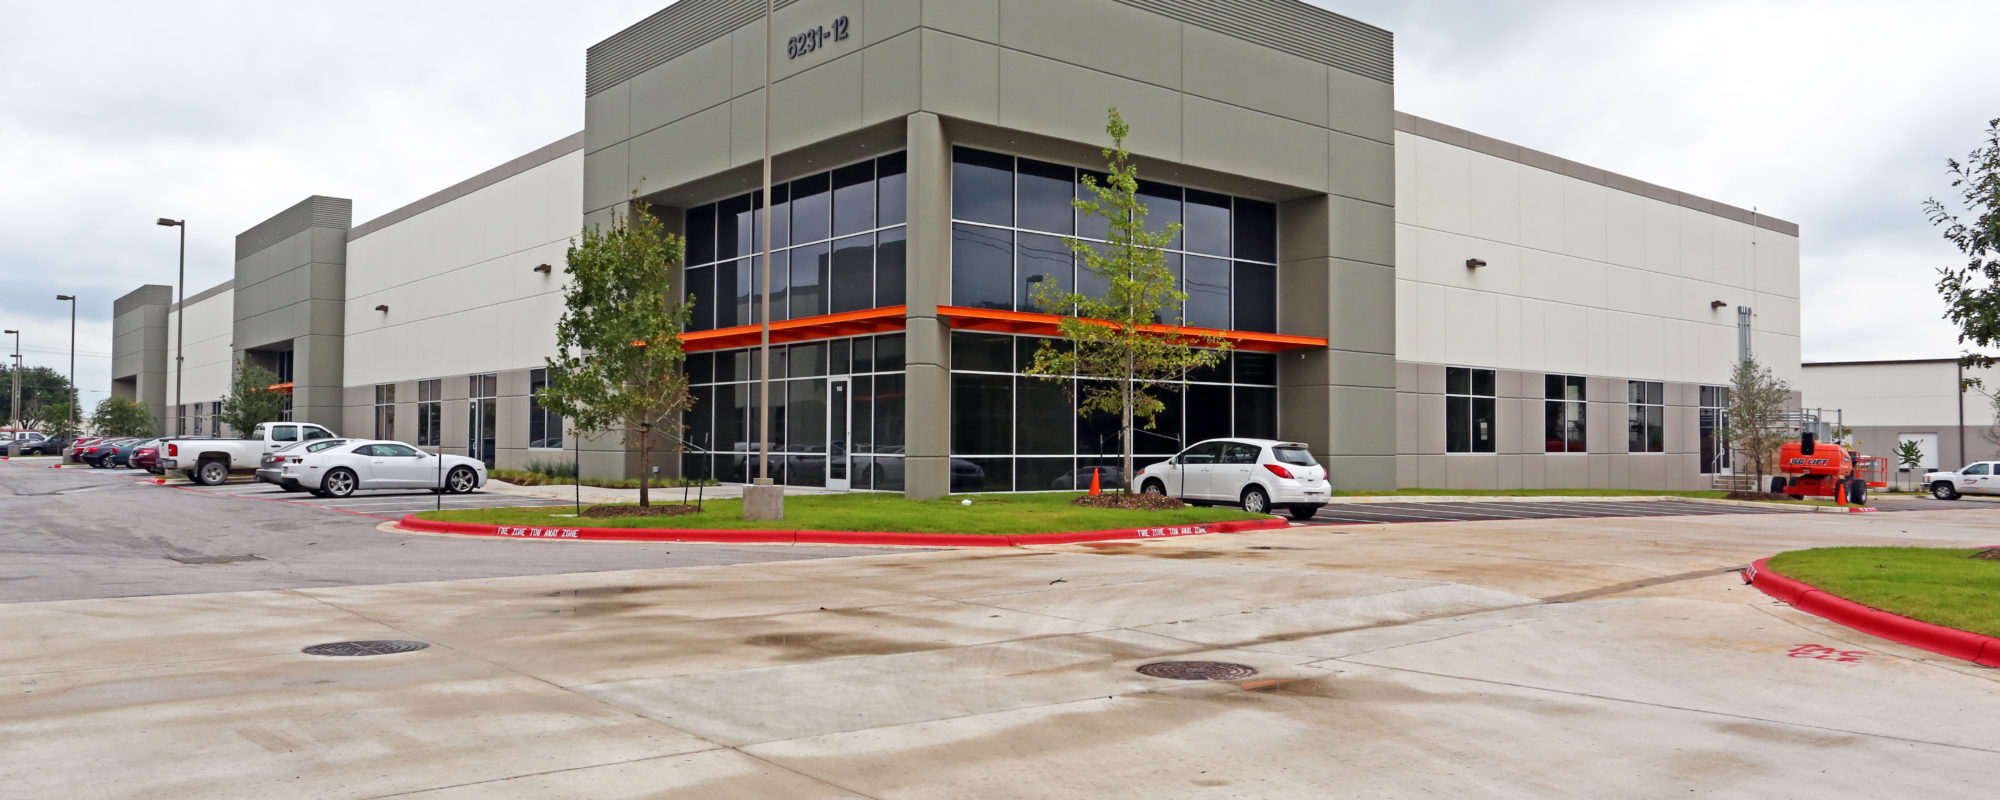 Expo Business Park | Industrial Property in Austin, Texas